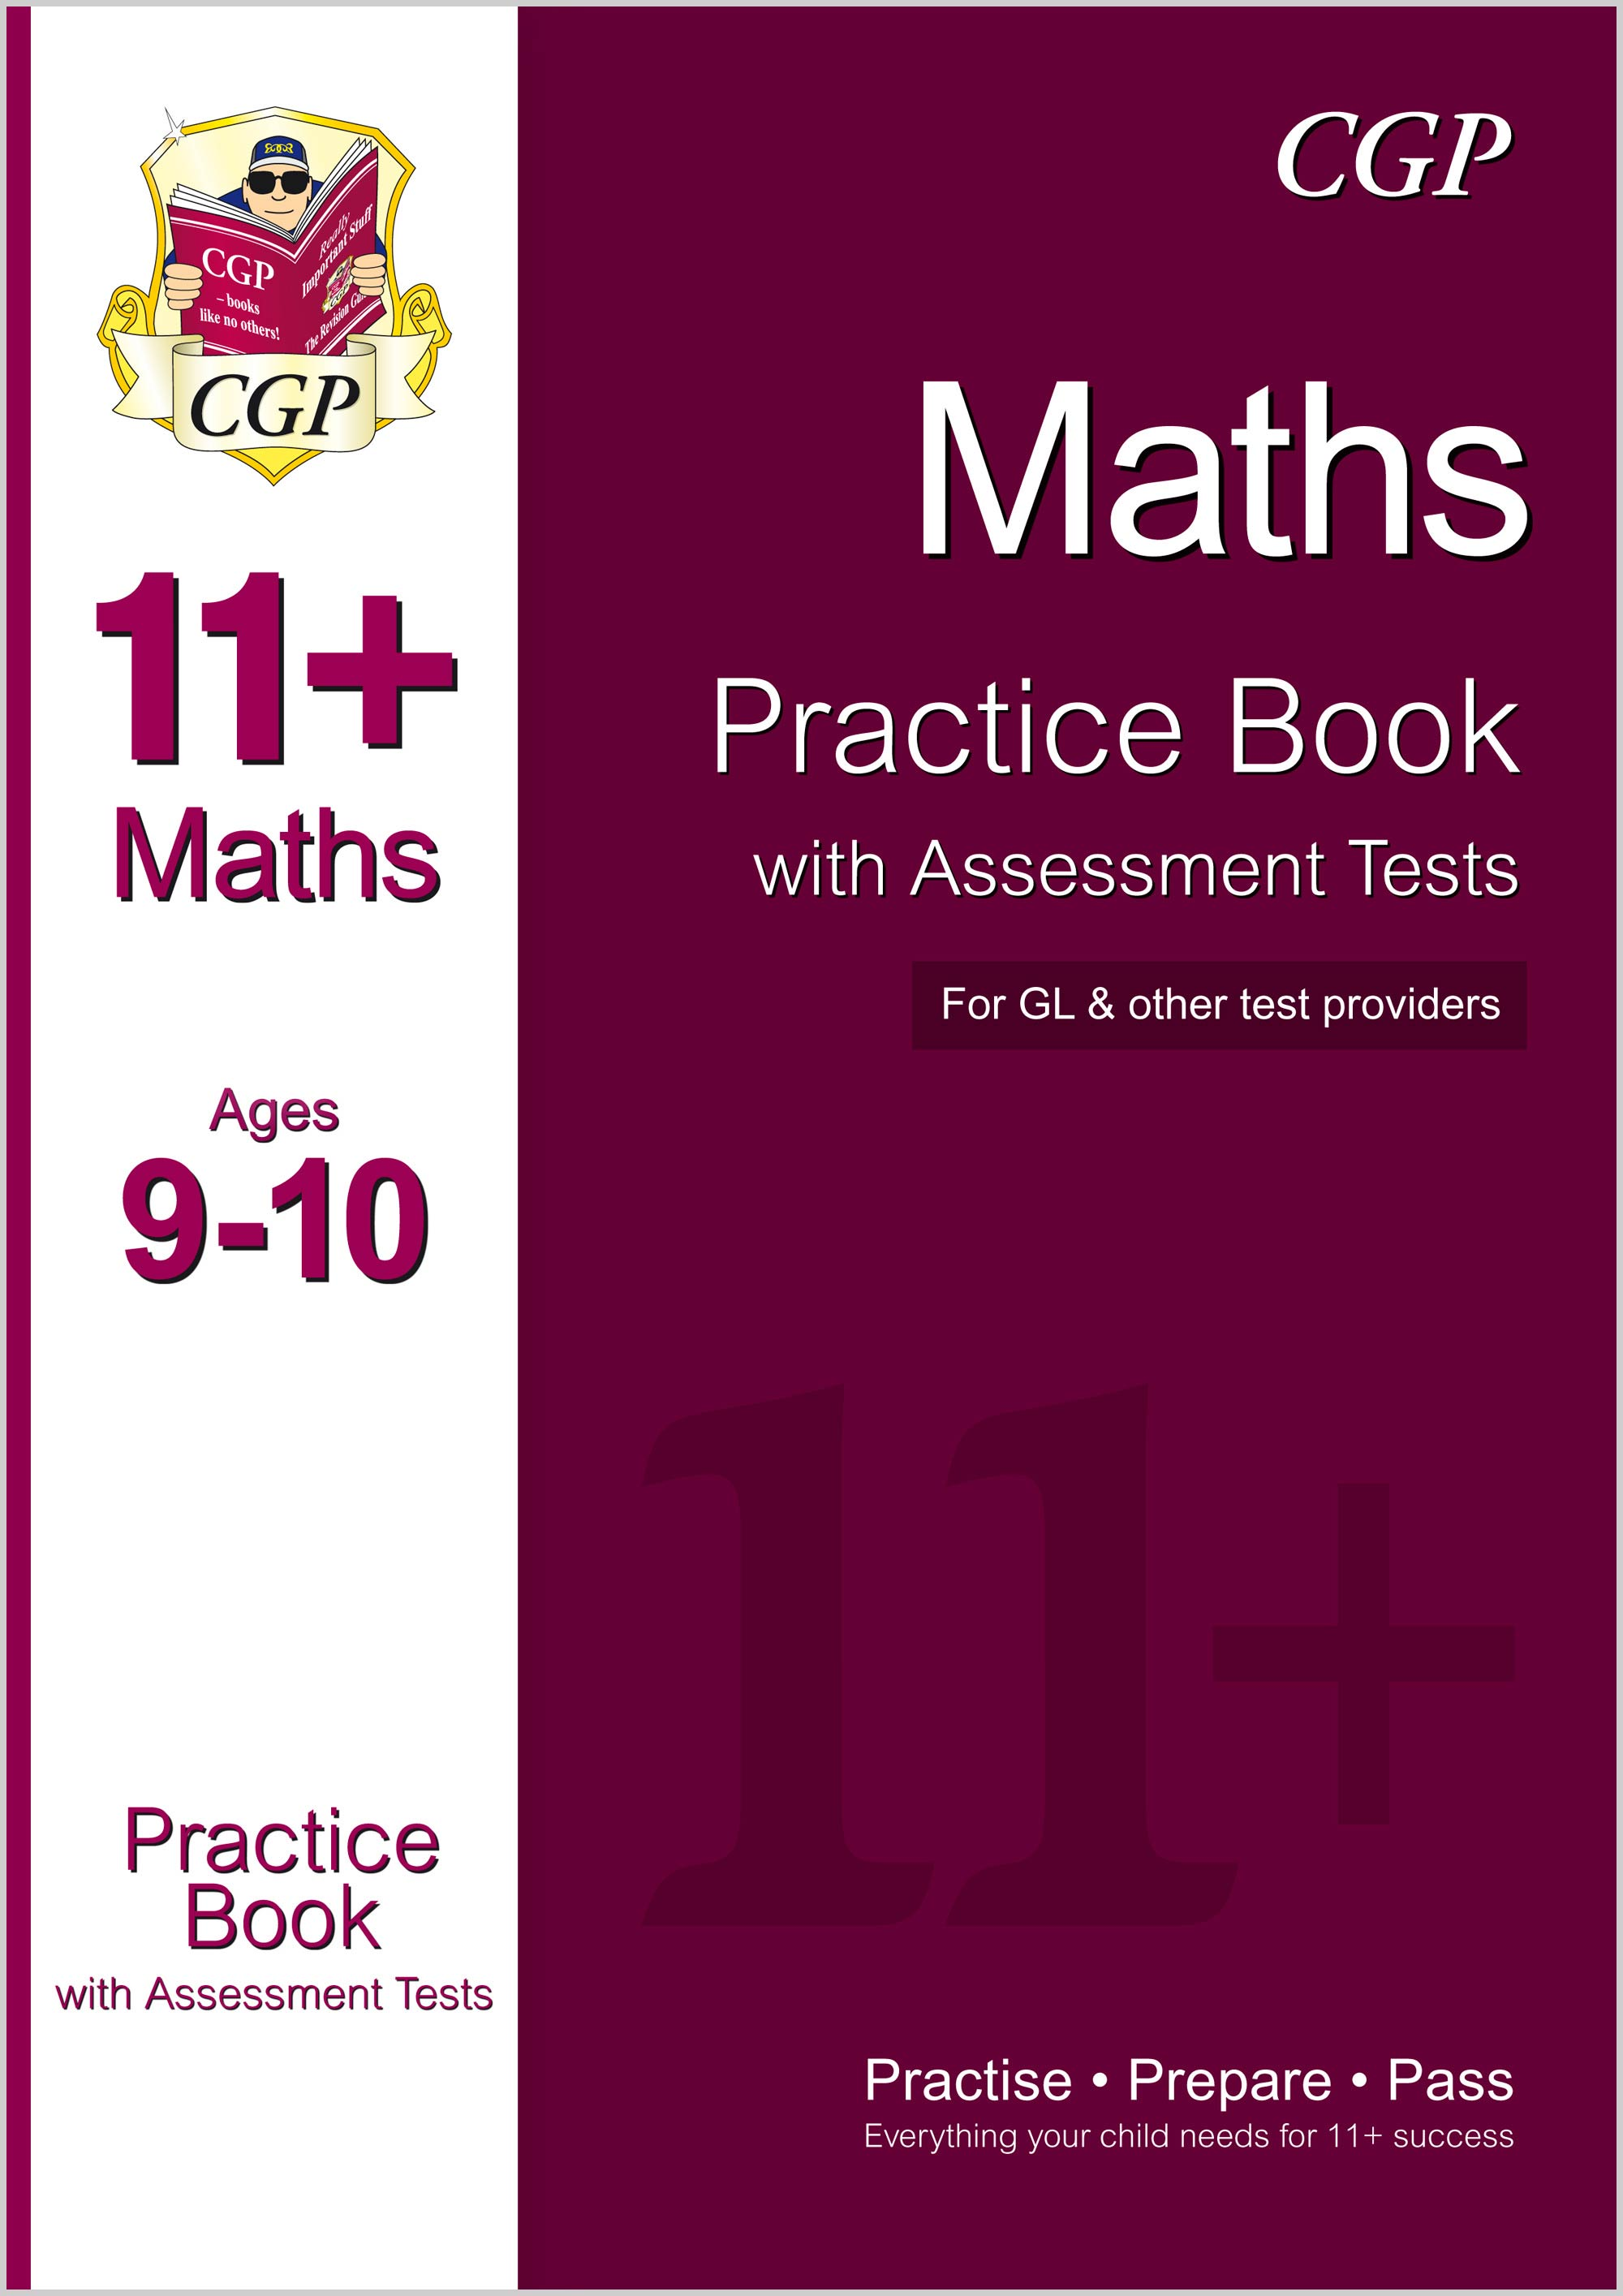 M5QE1 - 11+ Maths Practice Book with Assessment Tests Ages 9-10 (for GL & Other Test Providers)